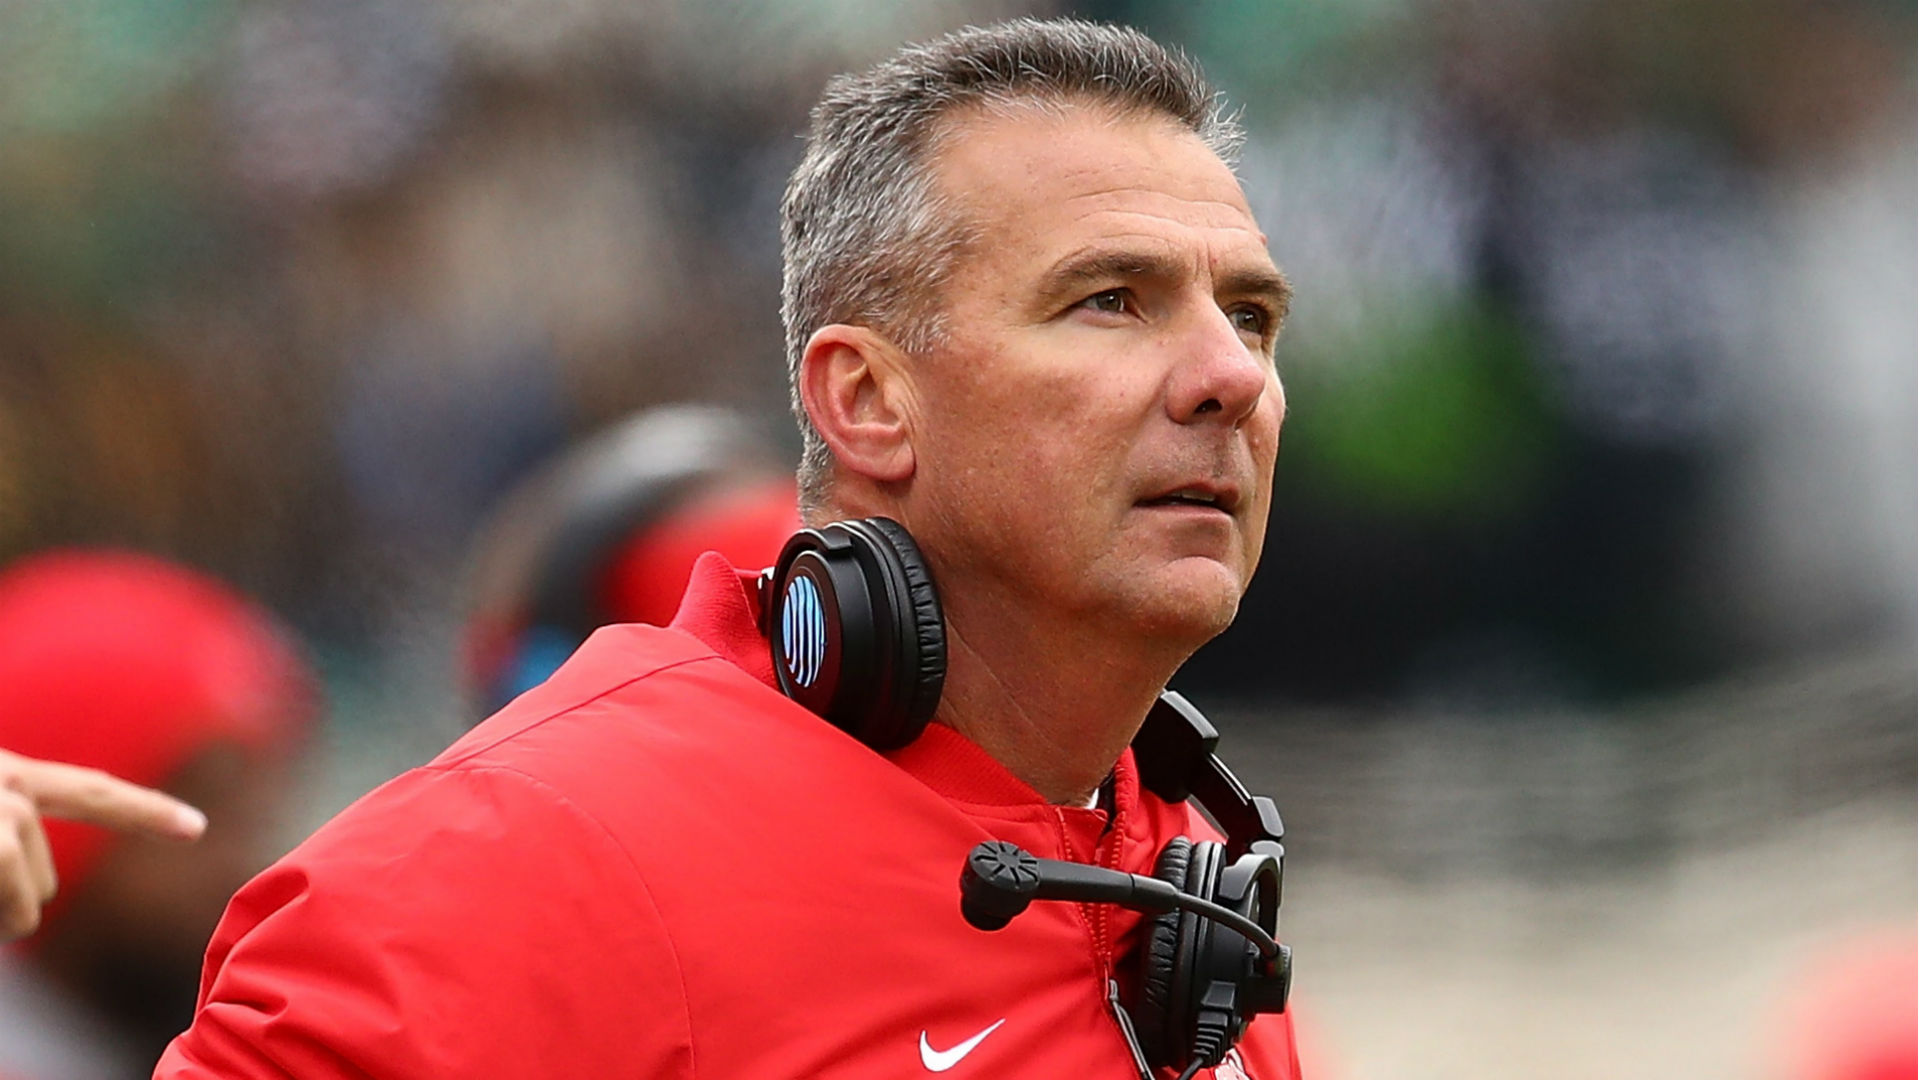 Urban Meyer's risky jump to NFL can succeed, somewhere between Nick Saban, Pete Carroll